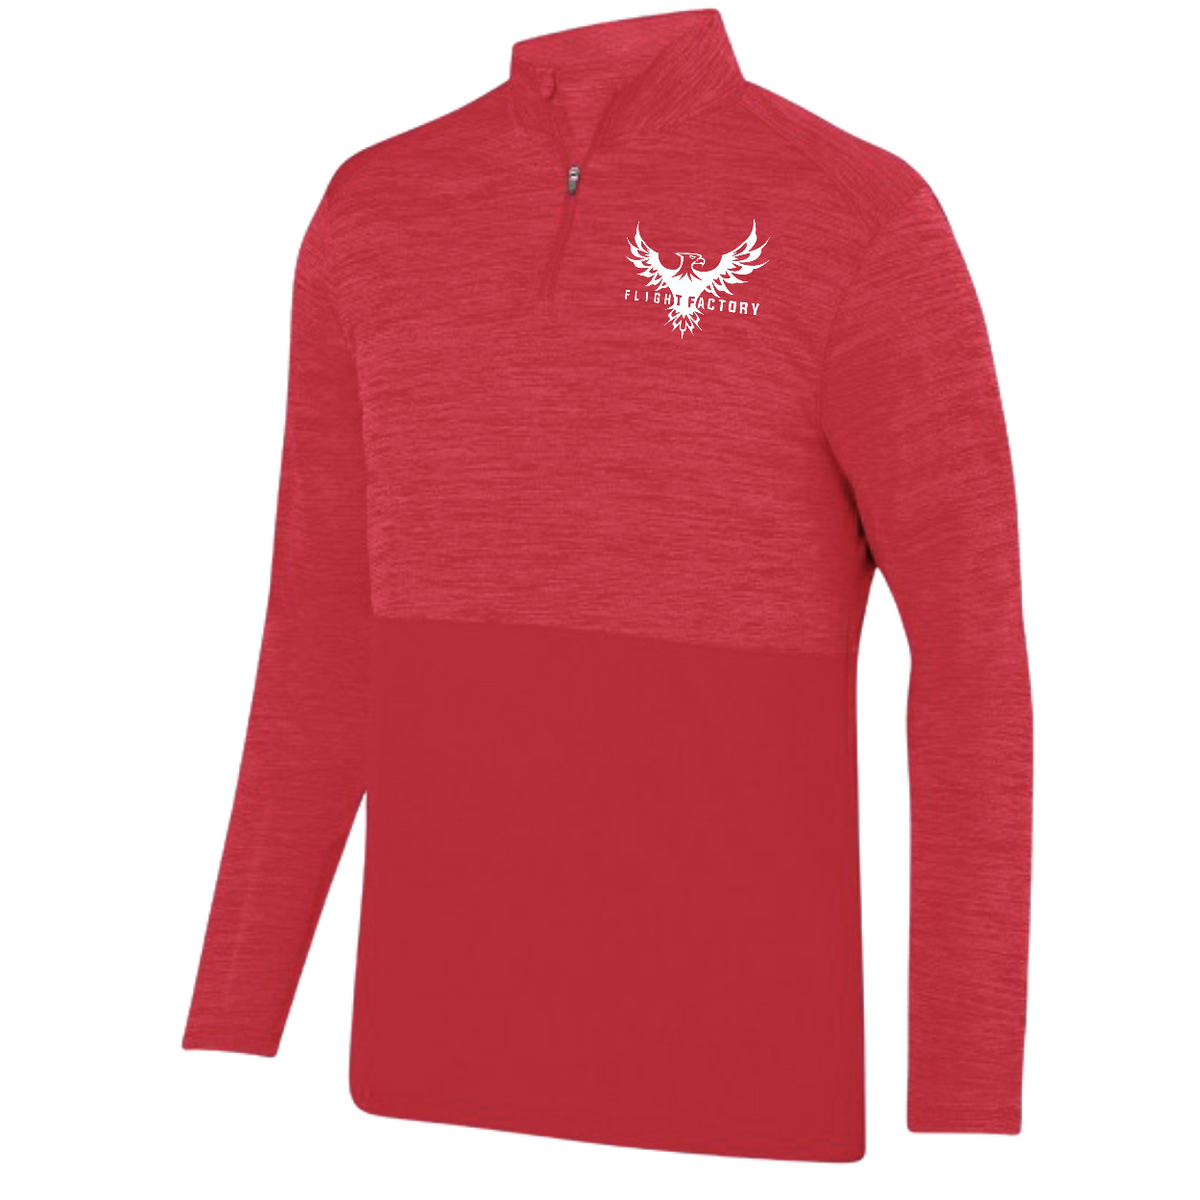 Flight Factory Small Eagle Heather Tonal 1/4 Zip Pullover